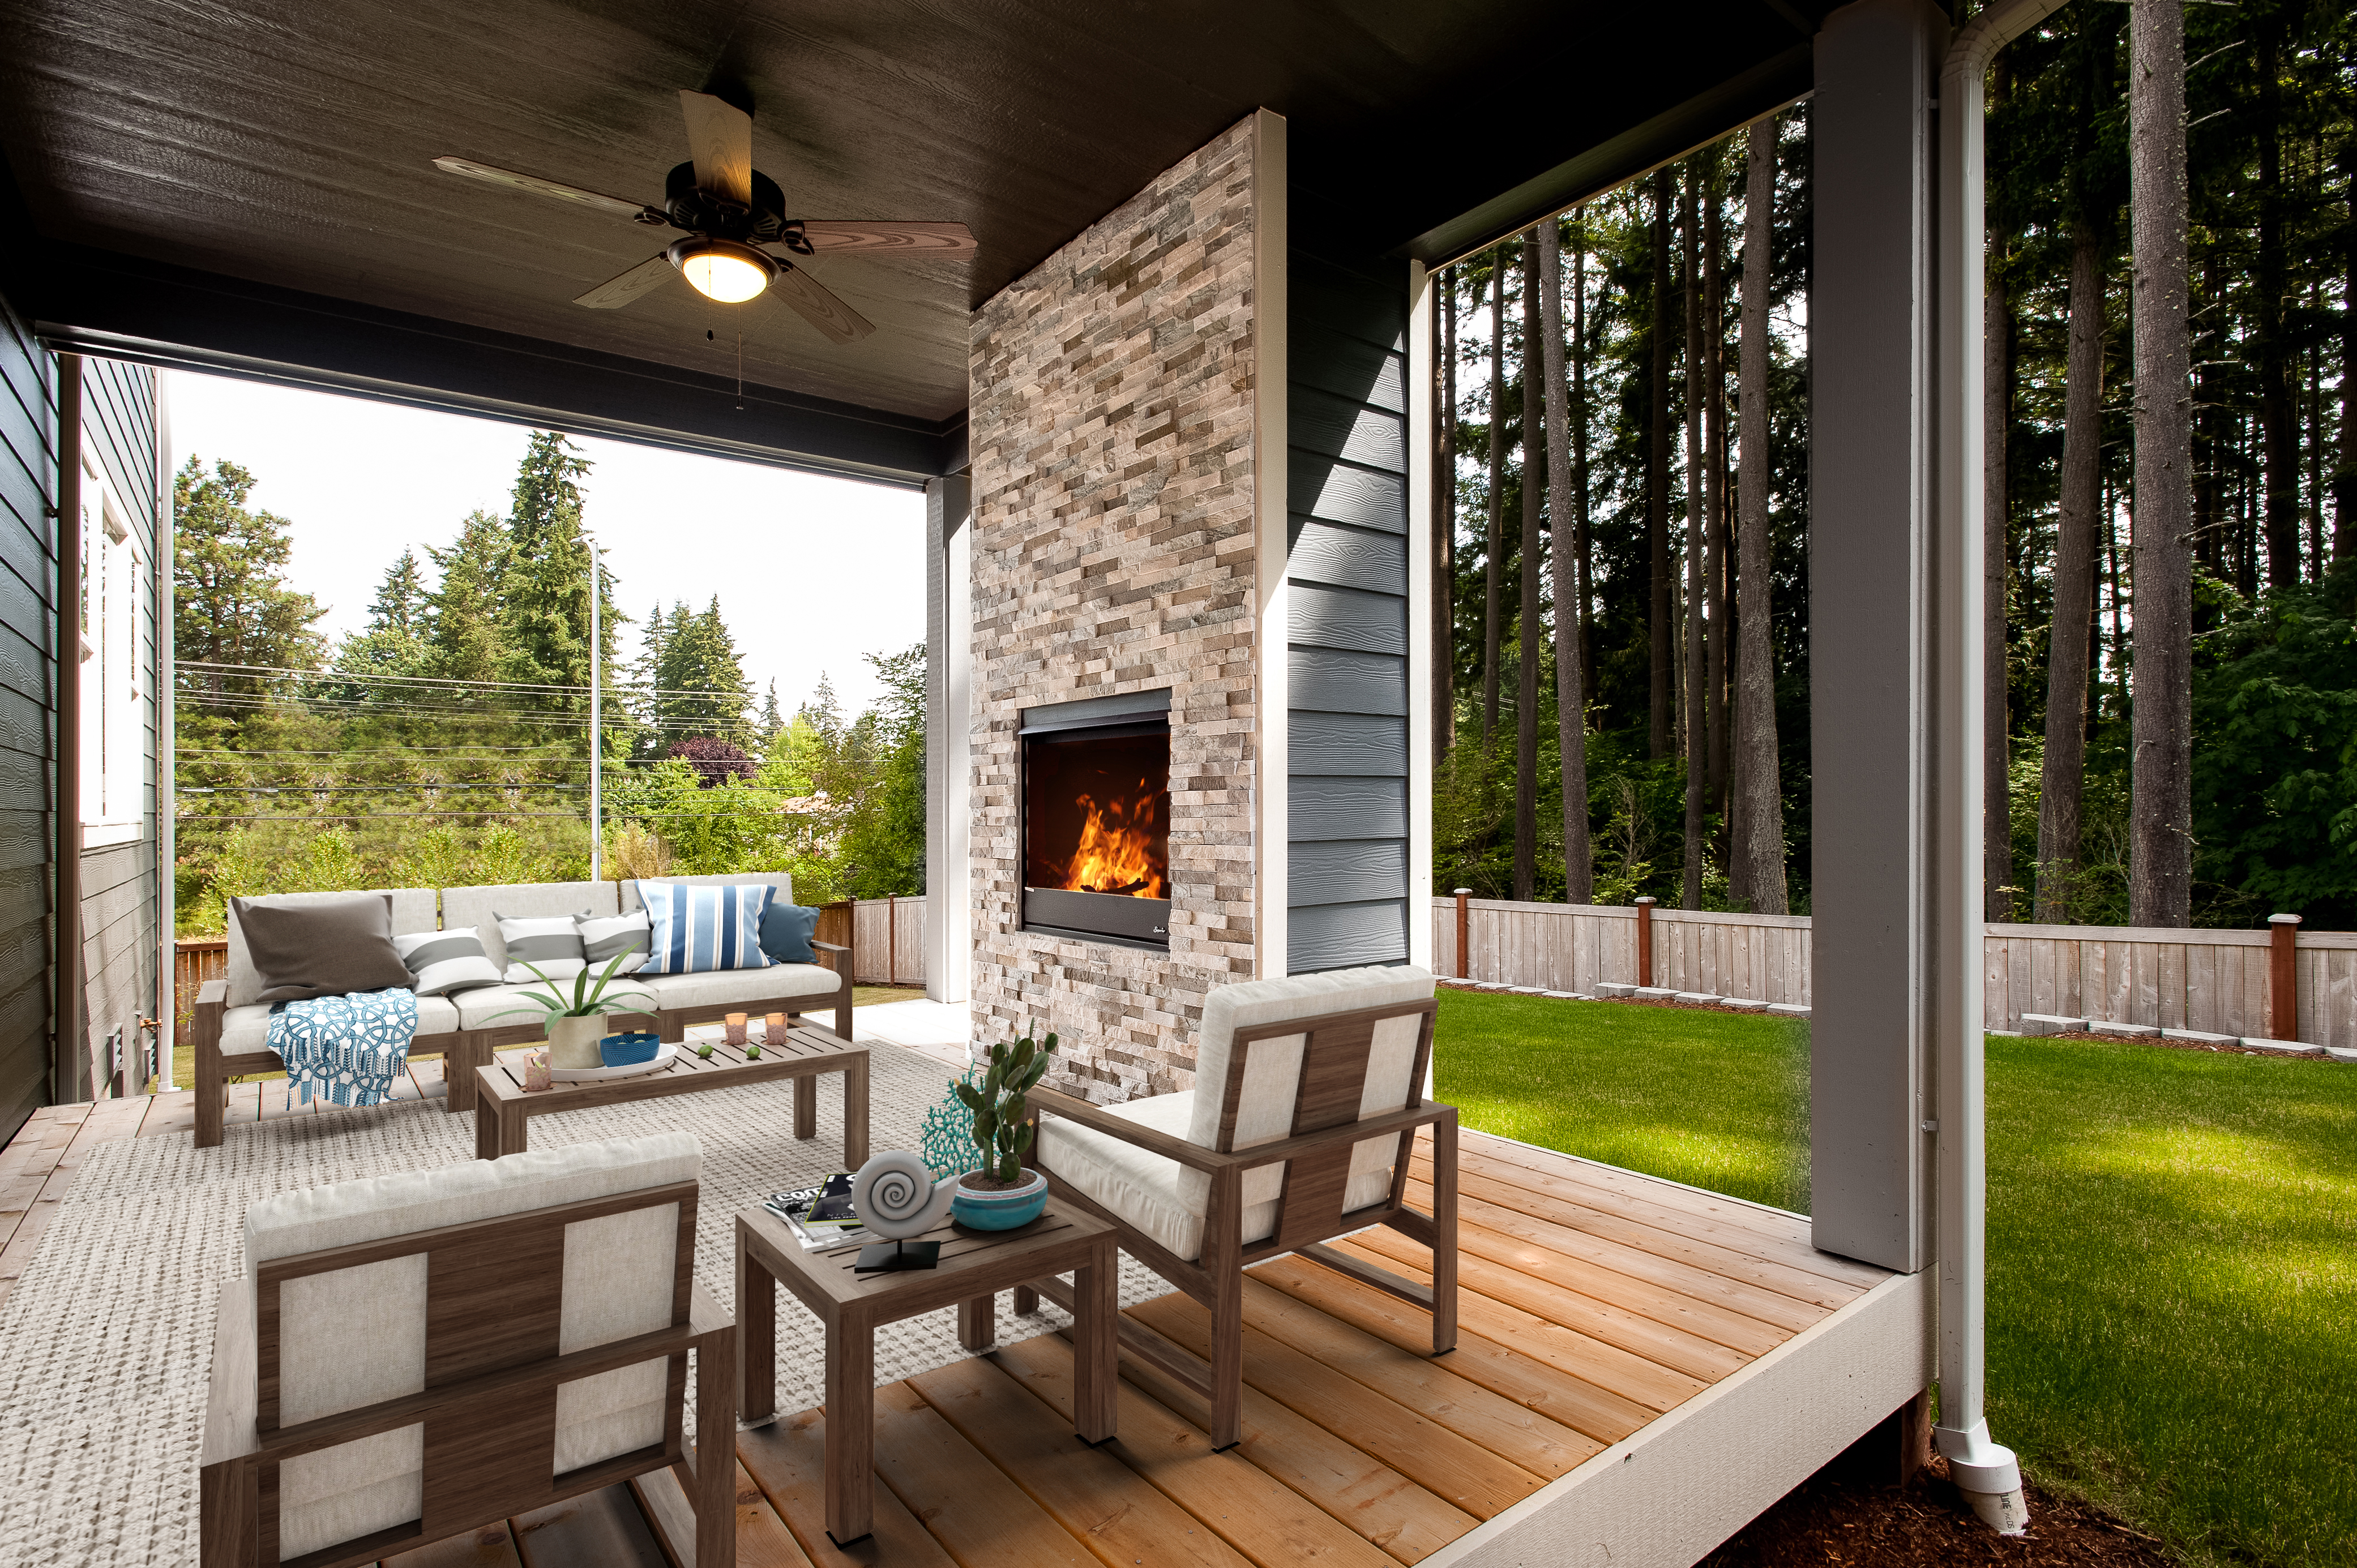 5. Maple Outdoor Living